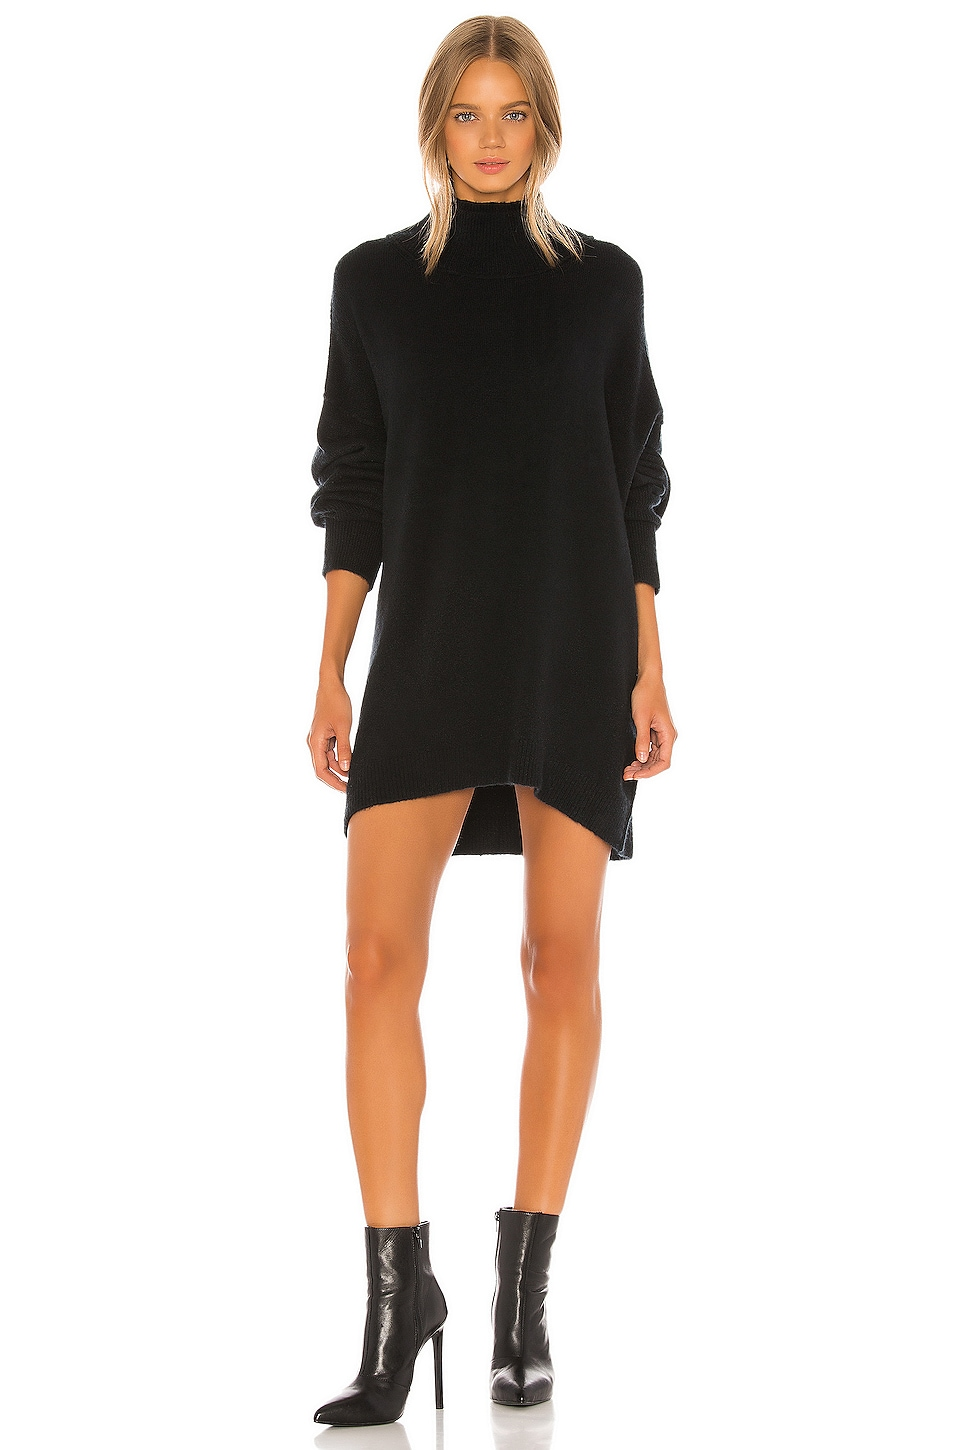 Free People VESTIDO JERSEY AFTERGLOW MOCK NECK